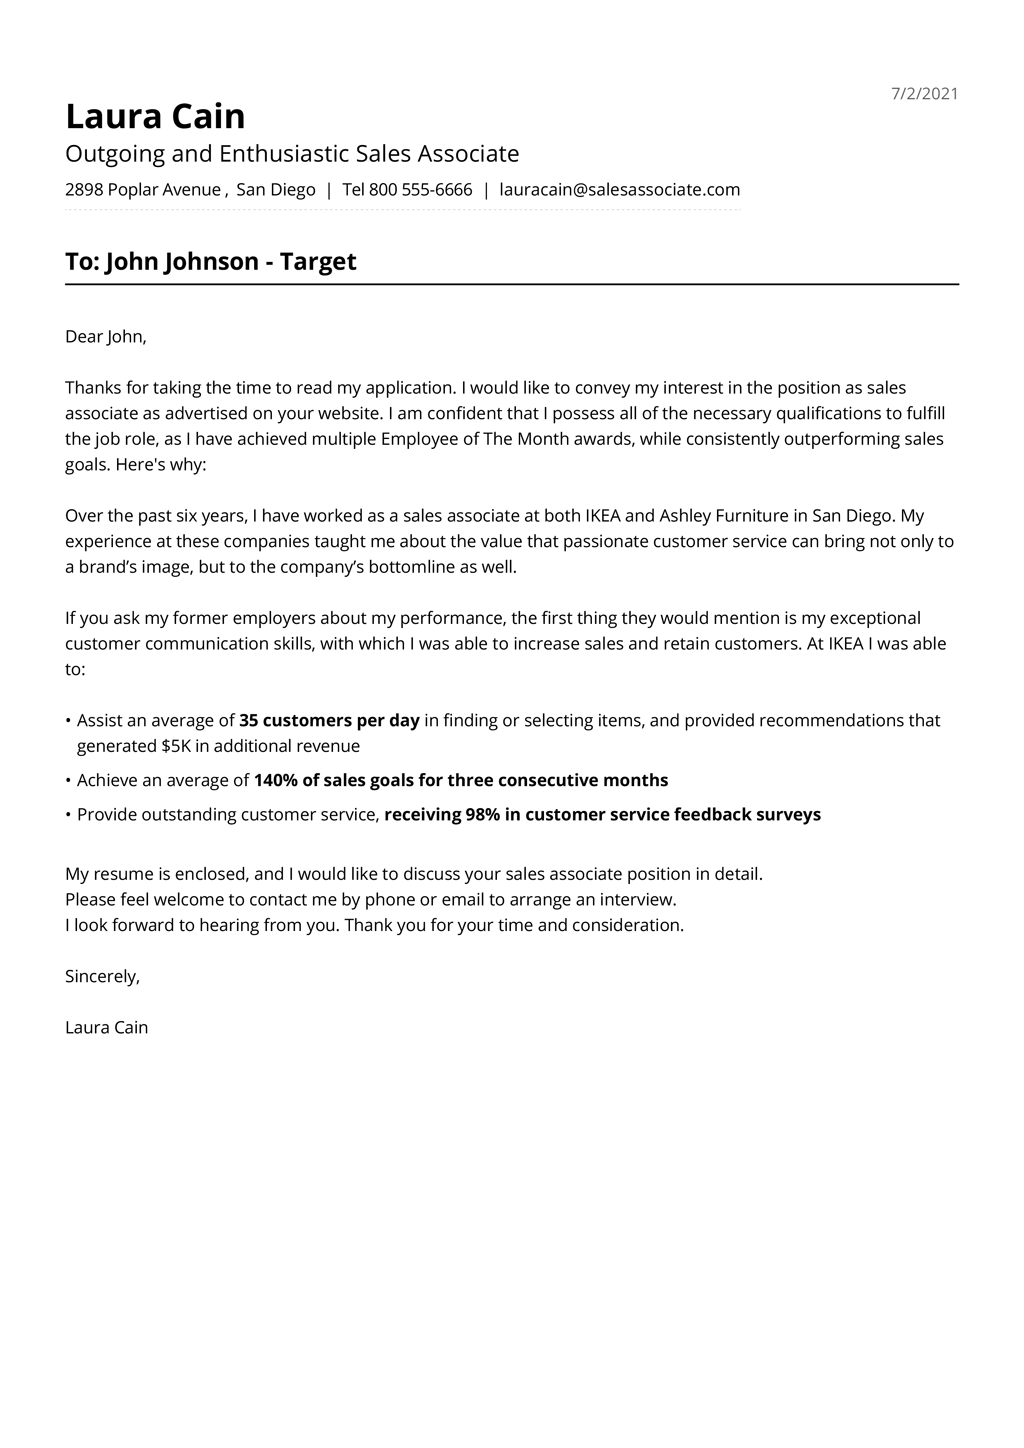 Basic Cover Letter Templates Free from jofibo.com